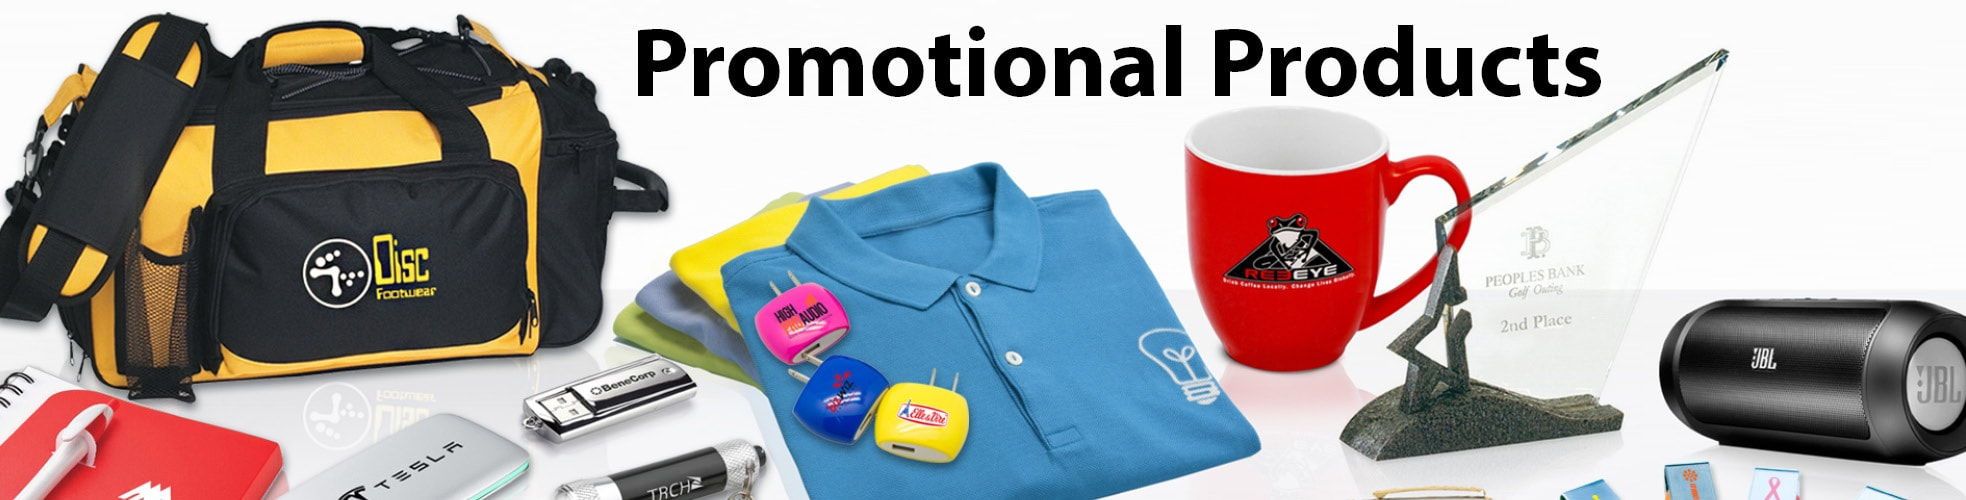 promotional products | LMS Solutions